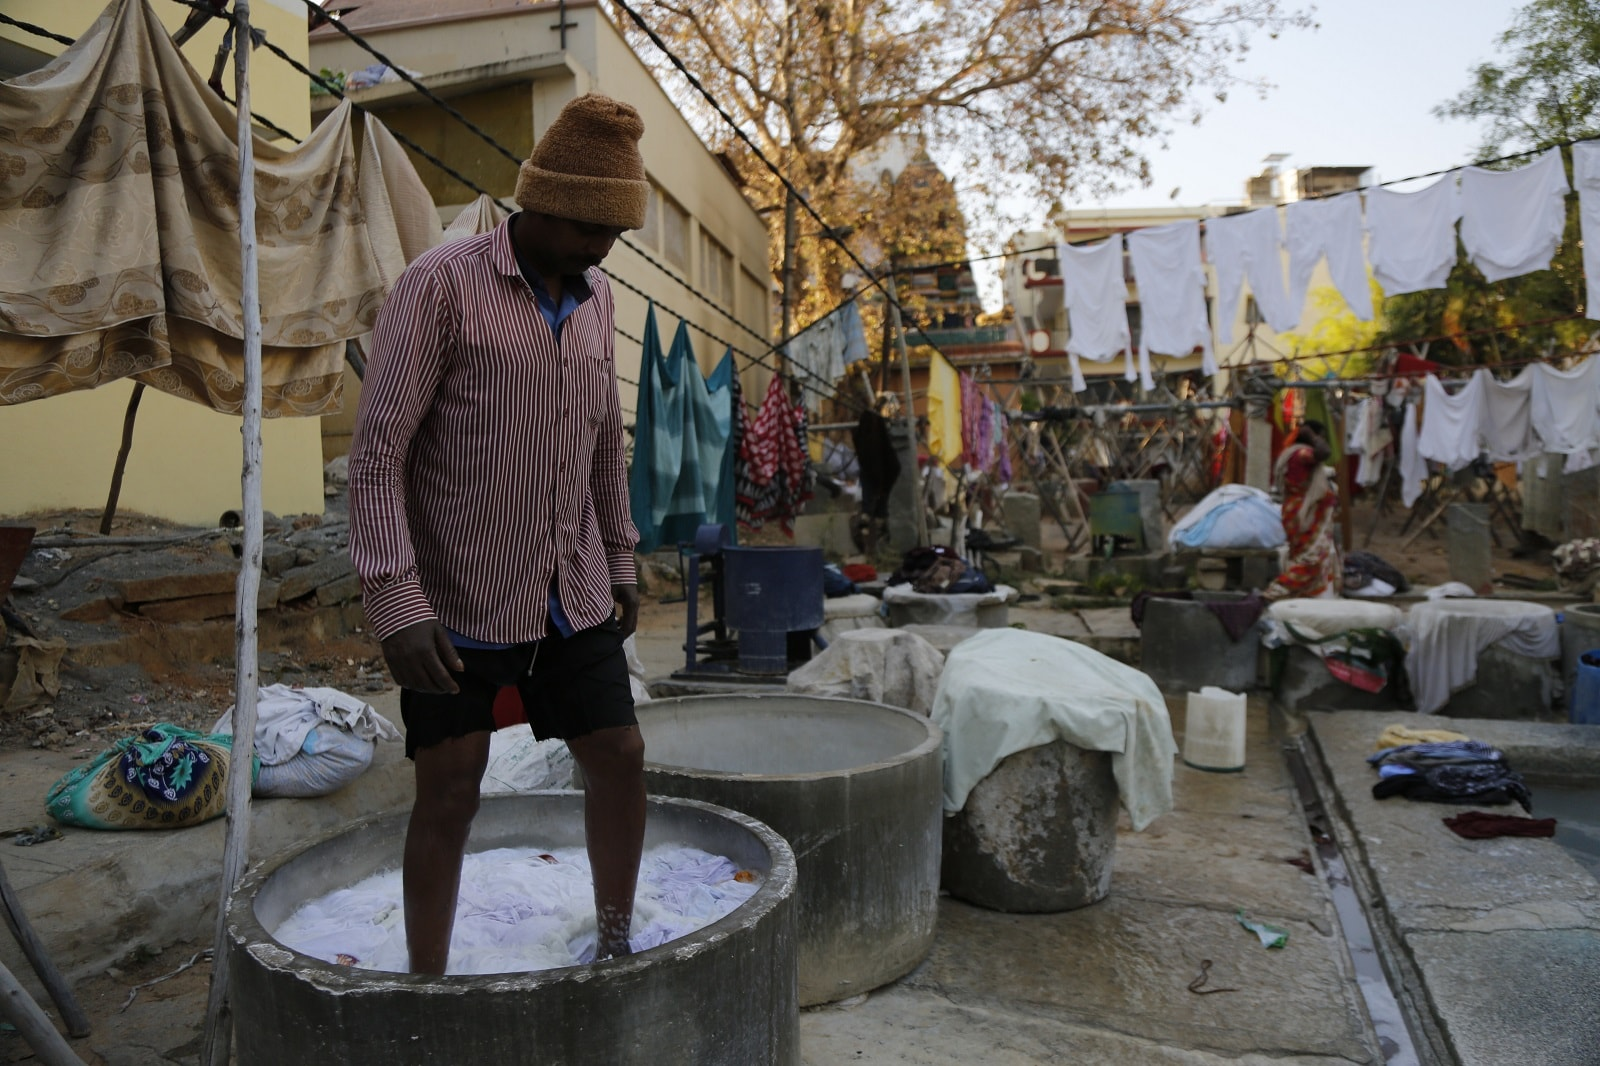 A washerman soaks clothes in detergent water at an open-air laundromat in Bangalore,  on March 13, 2019. Thomson Reuters Foundation/Rajan Zaveri